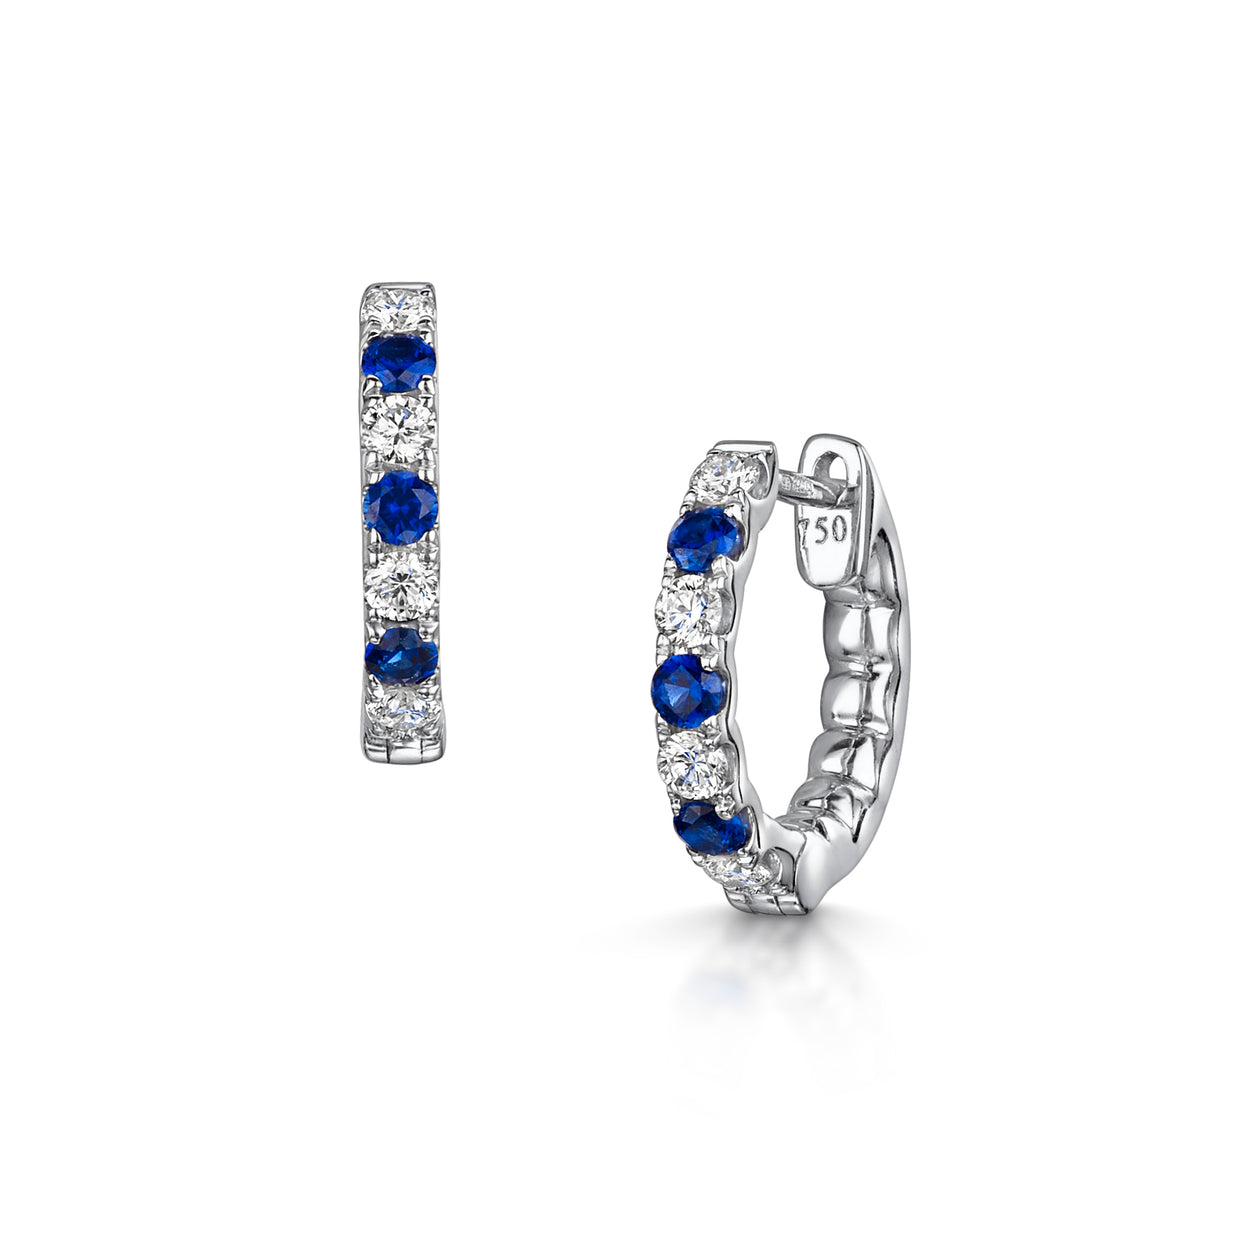 Diamond and Sapphire Earrings in 18ct White Gold-Hamilton & Inches